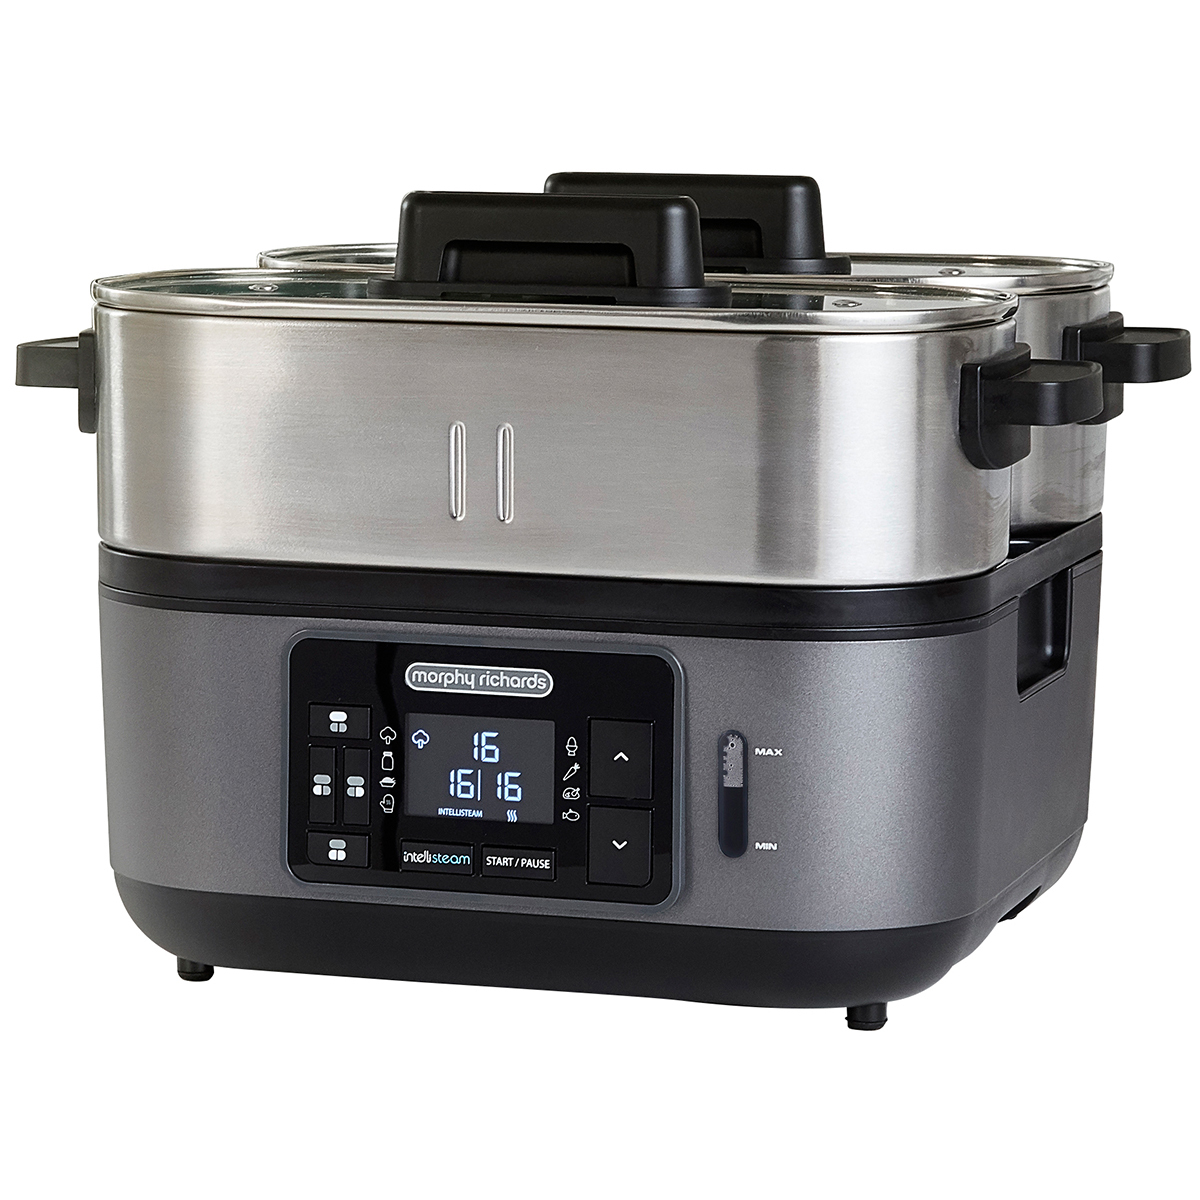 Morphy Richards Intellisteam 6 8l All In One Steamer Costco Australia 118,278 likes · 107 talking about this. morphy richards intellisteam 6 8l all in one steamer